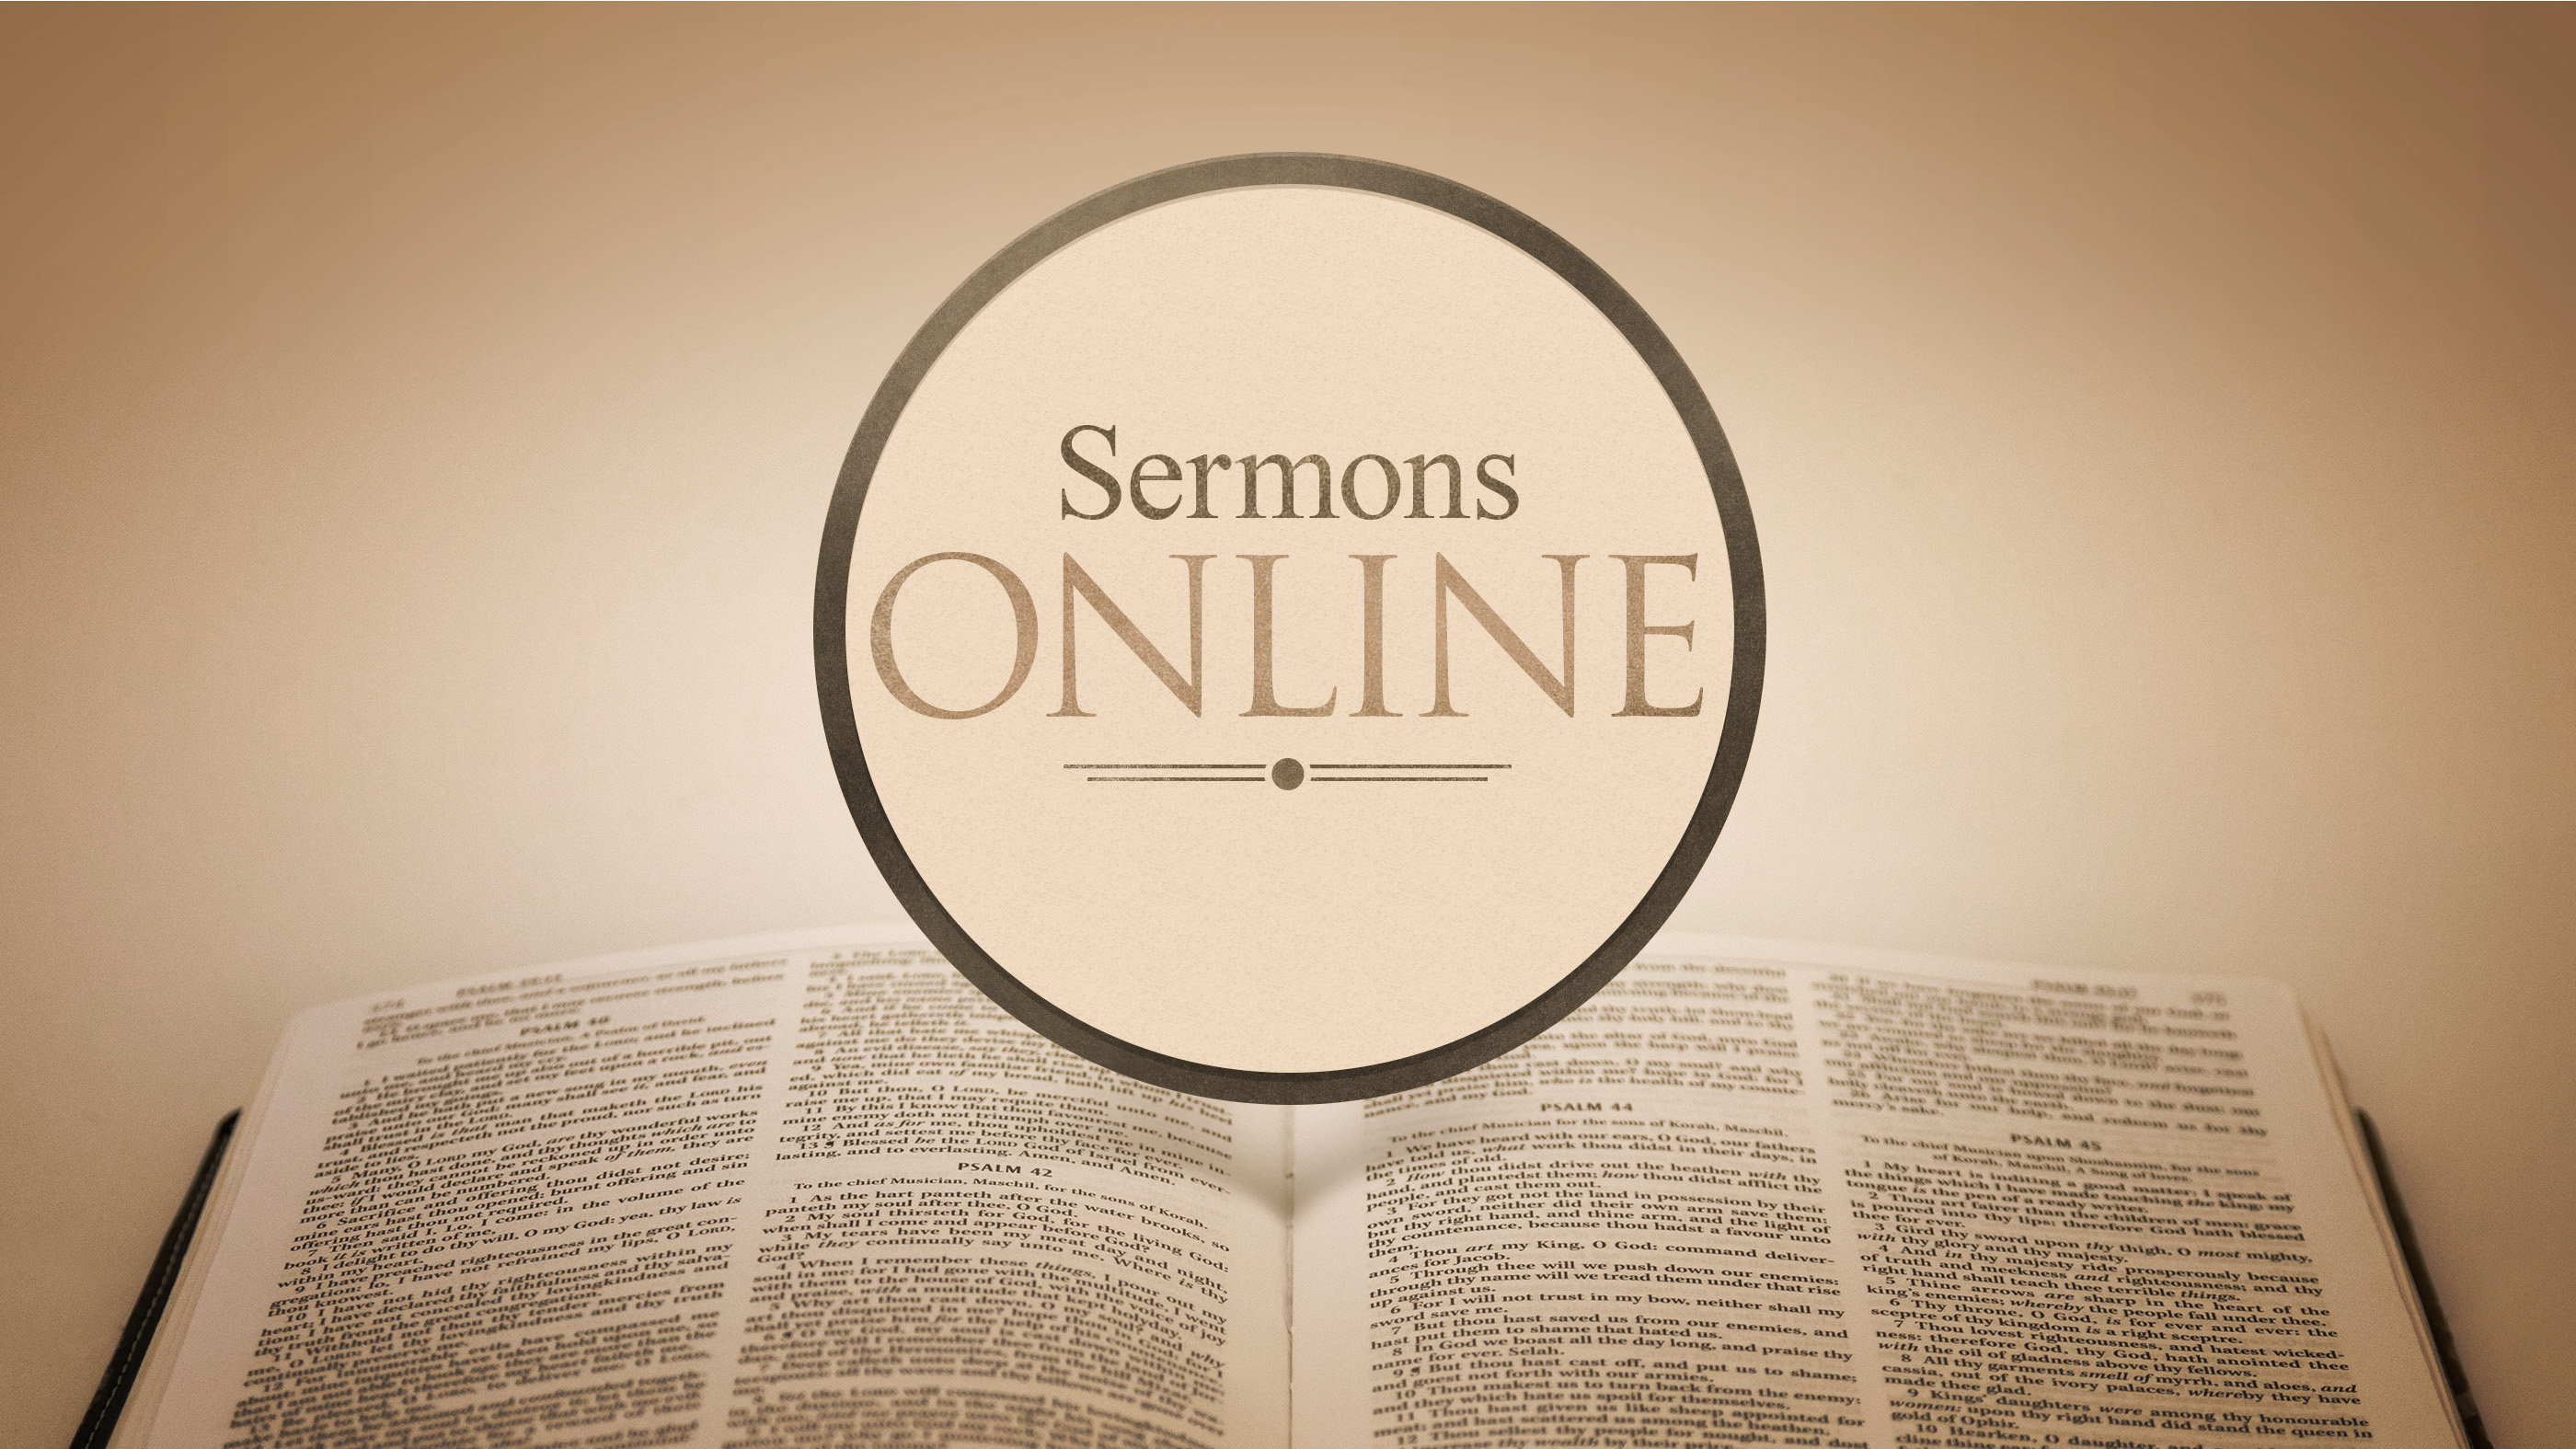 Online sermons about dating